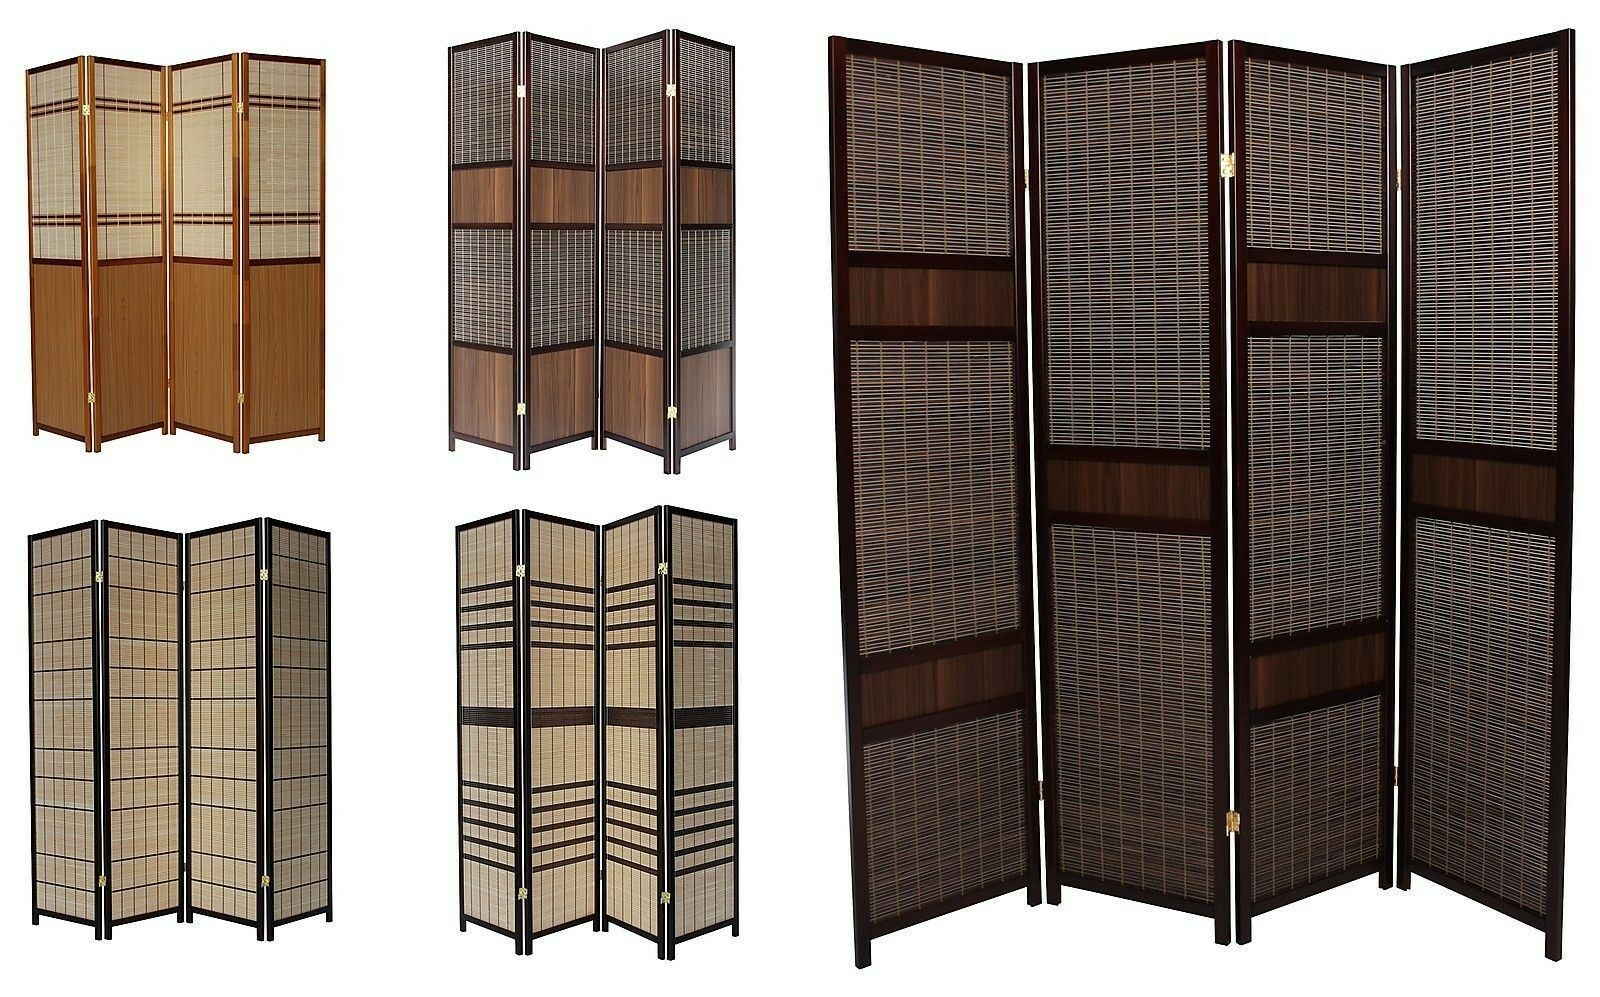 luxury wood panel folding room divider privacy screen high quality heavy weight. Black Bedroom Furniture Sets. Home Design Ideas